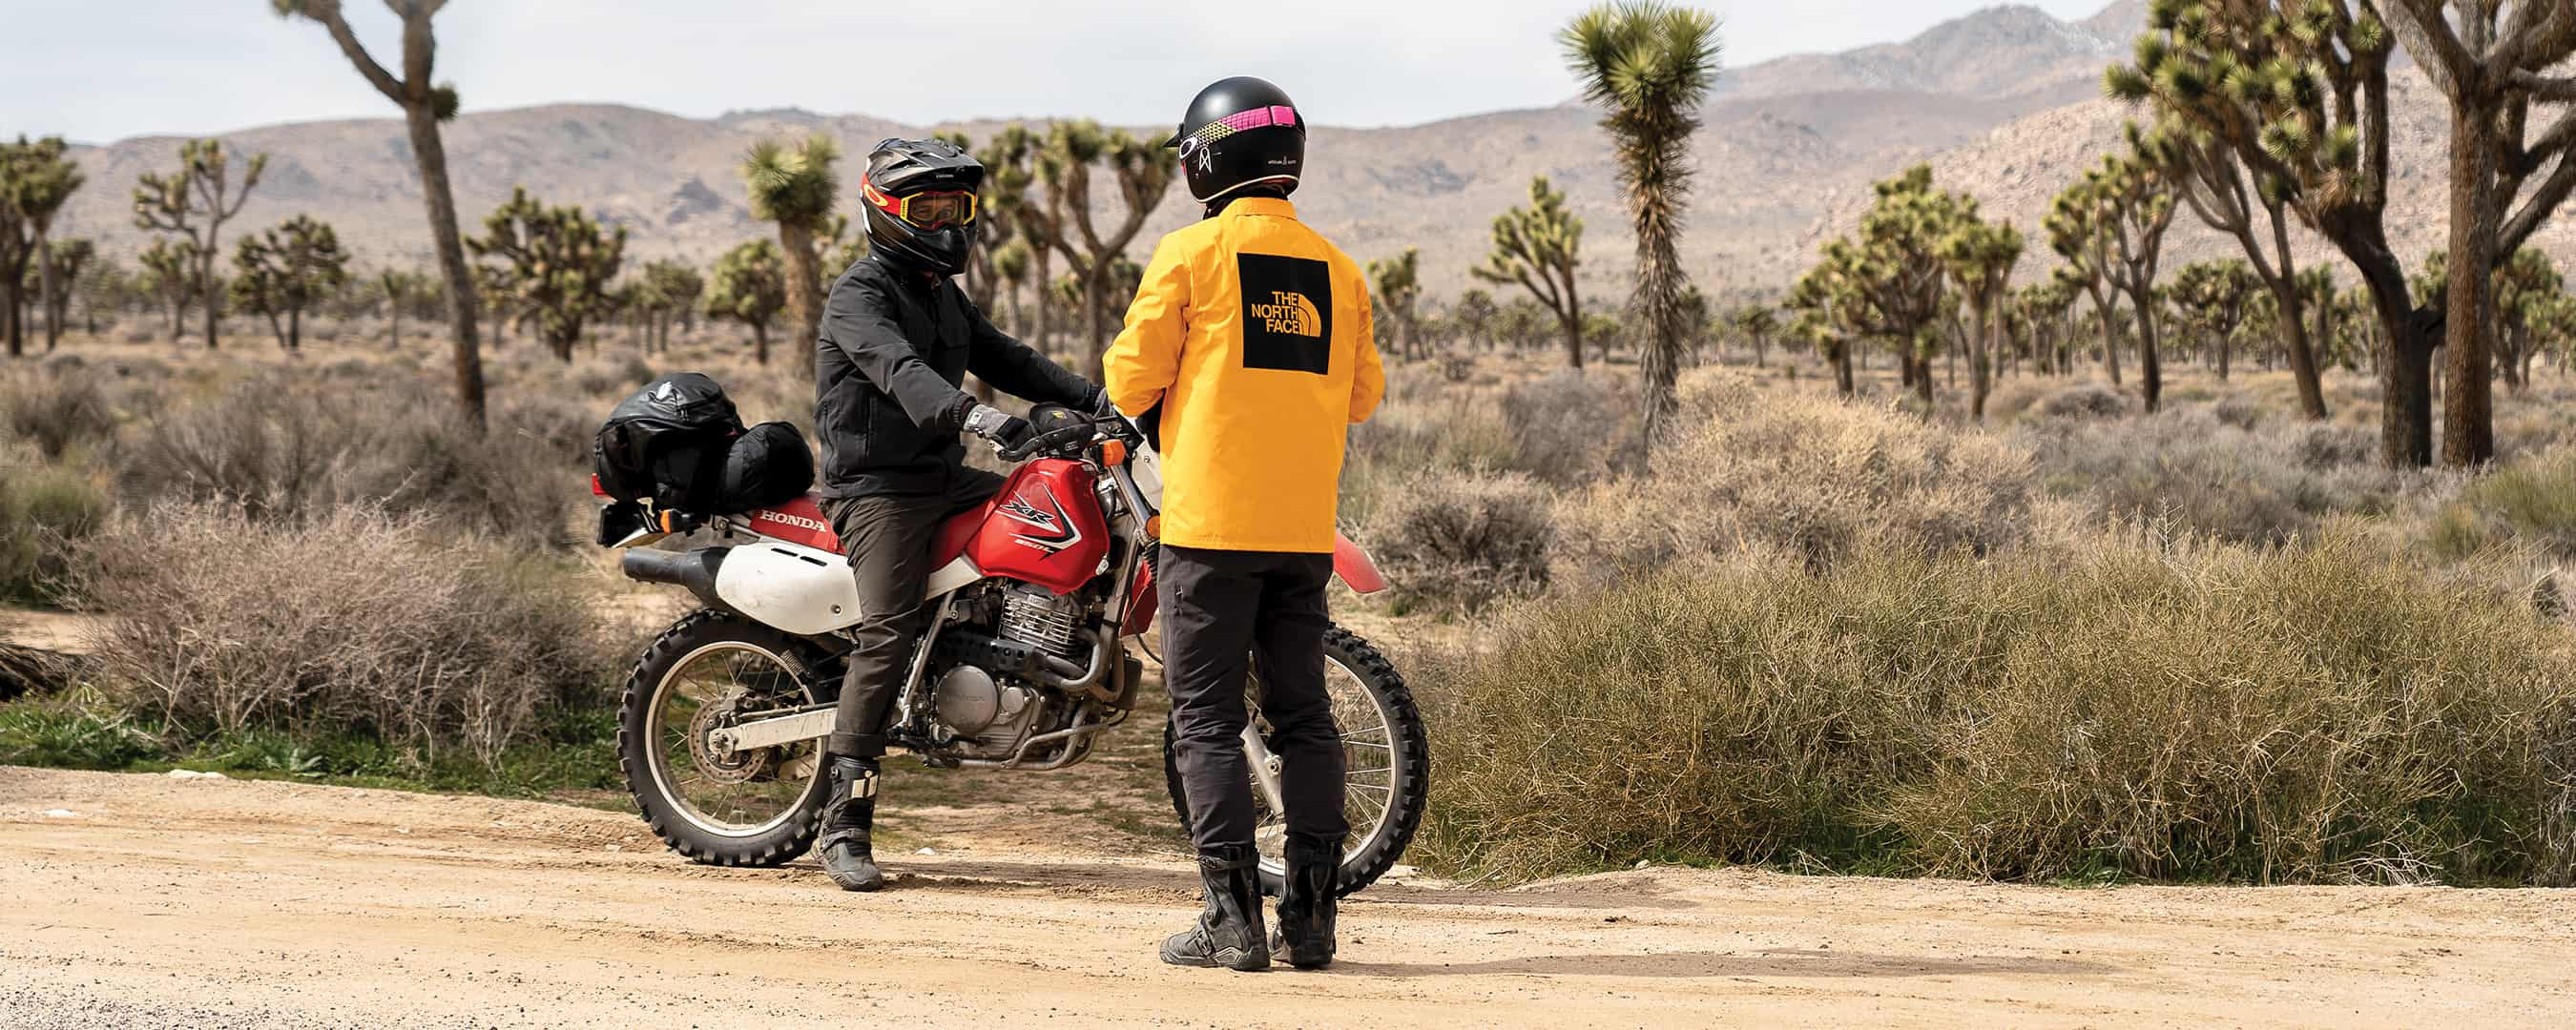 The North Face. Never Stop Exploring Responsibly: L.A. to Joshua Tree & Back with The North Face